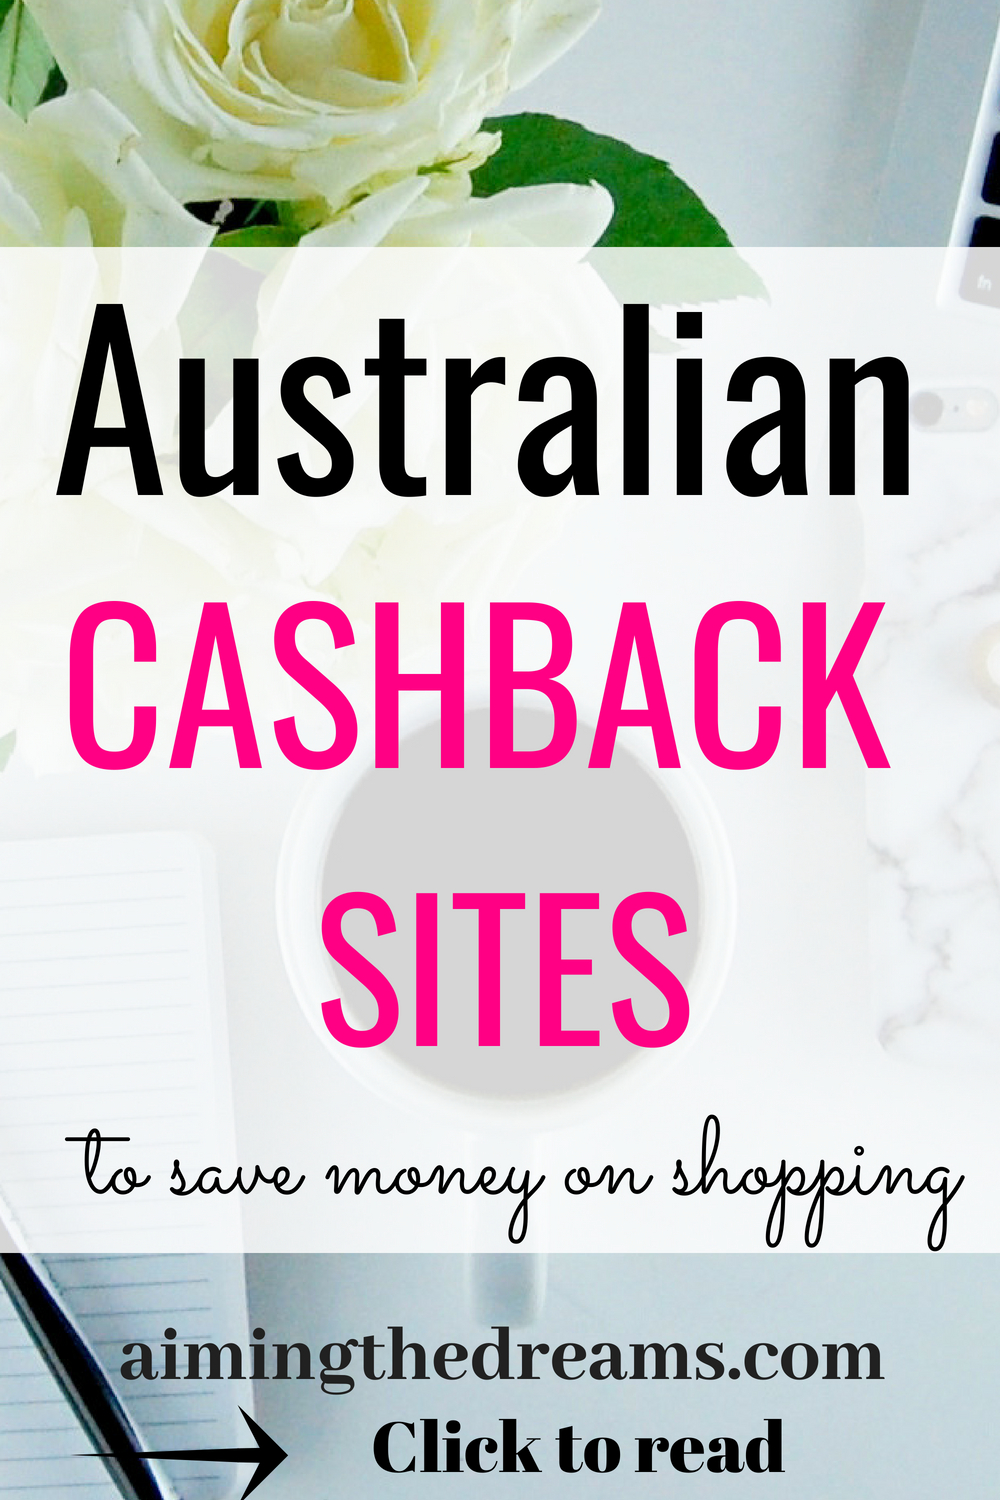 #Casback sites to #save #money on #shopping in #Australia. click to read. These helps in saving money while shopping online.